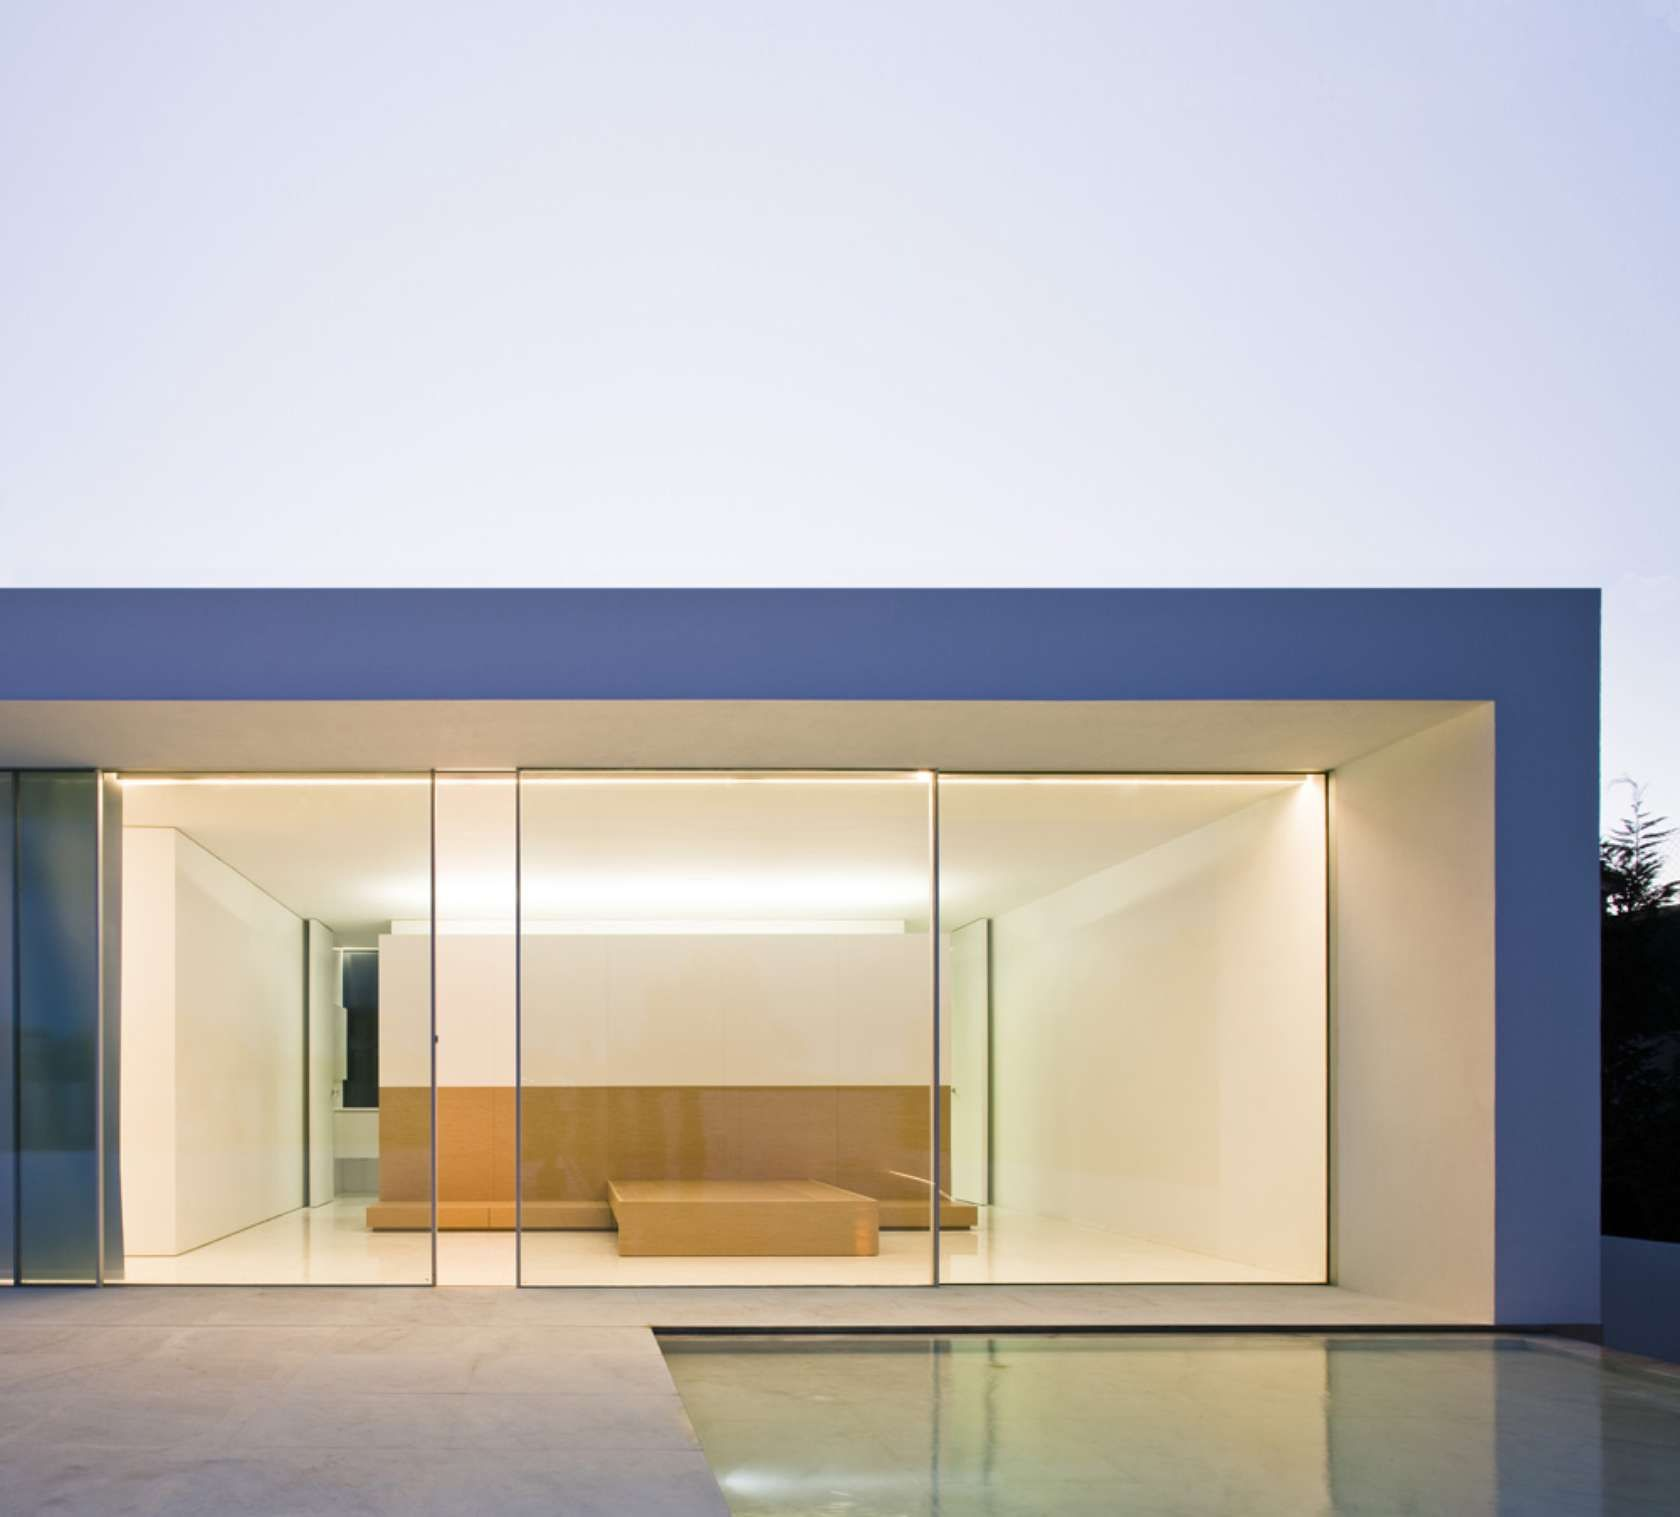 Fran Silvestre Arquitectos Office of architecture in Valencia